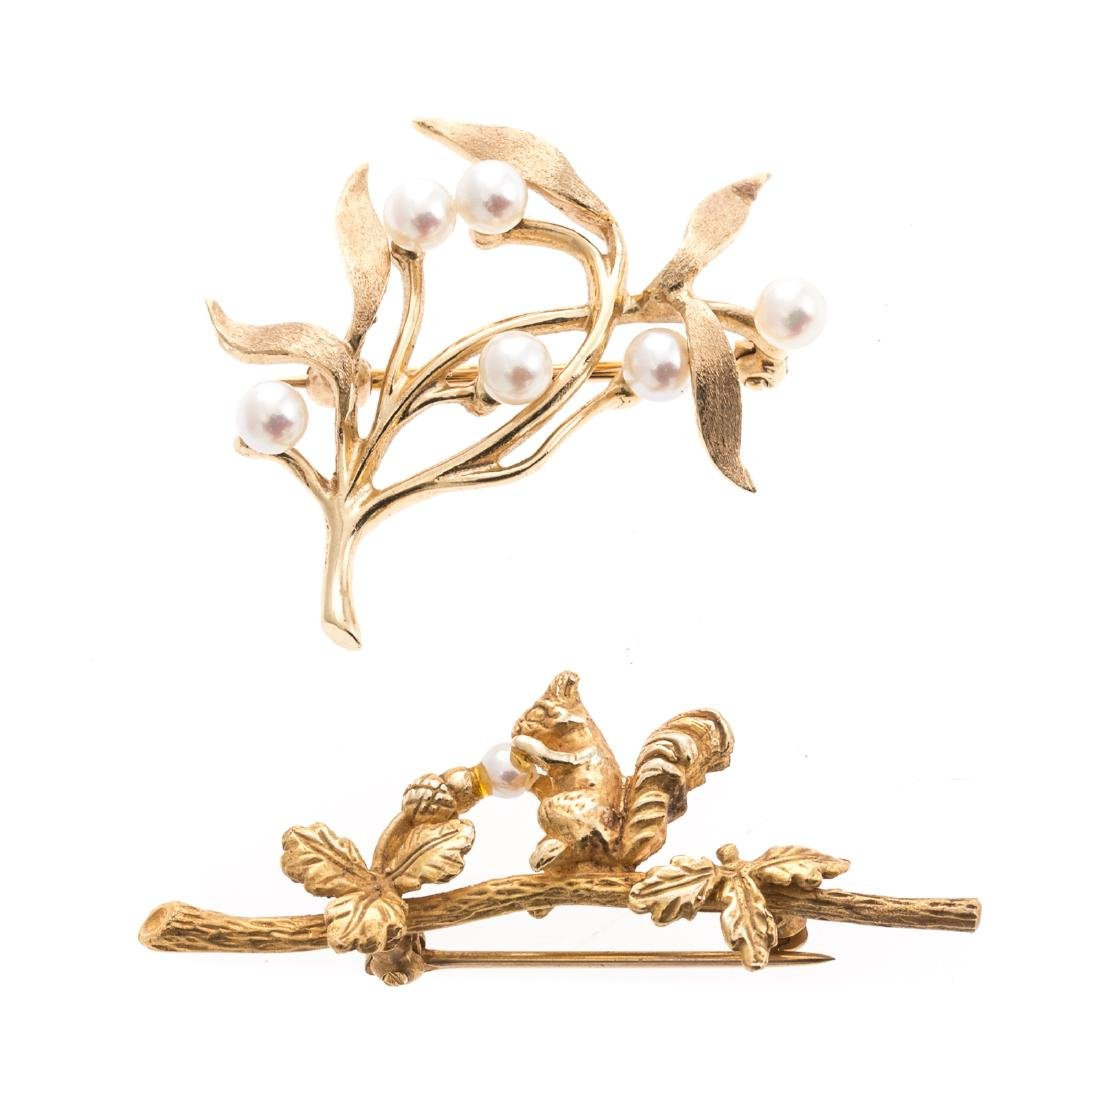 Two Lady's Pins with Pearls in 14K Gold